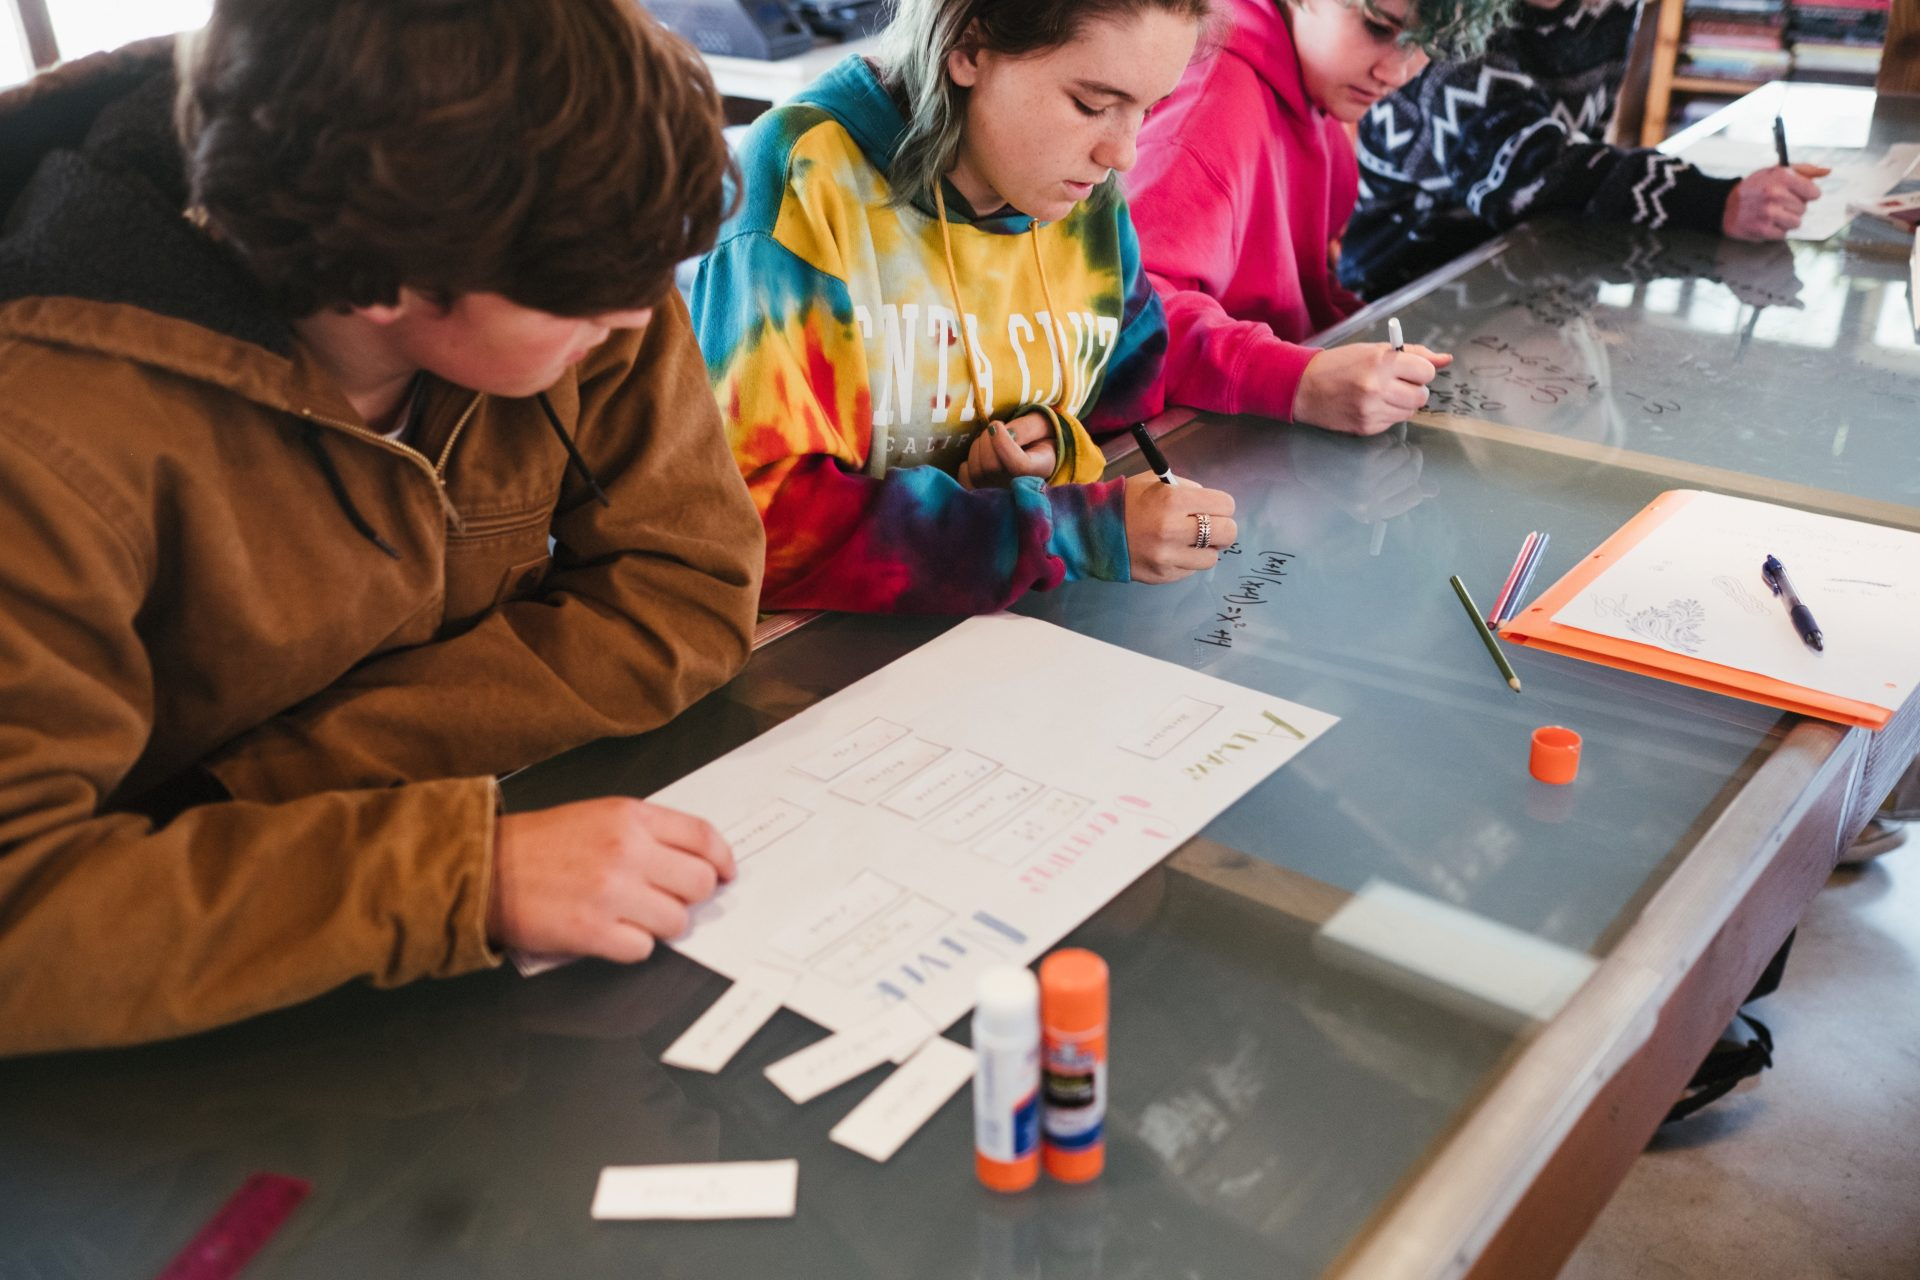 Four students sit next to each other at a clear dry-erase board–topped table. The three students furthest from the camera each scribble with black dry erase markers while the student closest to the camera manipulates slips of paper on a larger piece of paper, glue sticks at the ready for pasting the slips down when answers are acertained.